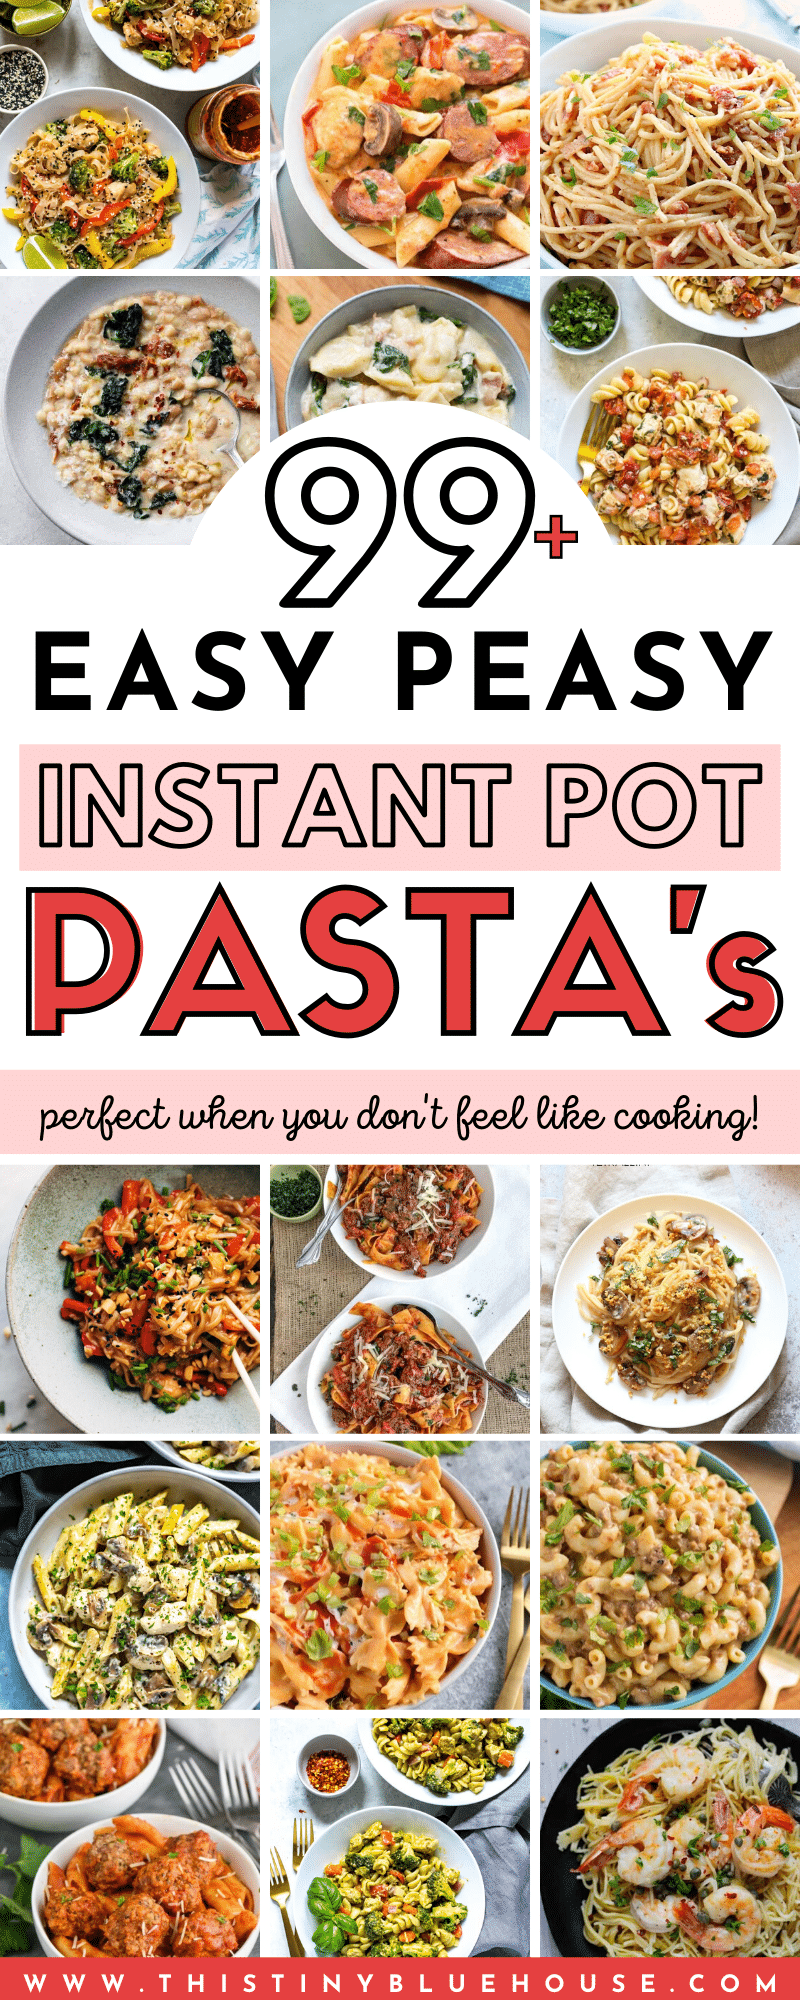 Get dinner on the table in a flash with these stupid easy and insanely delicious Instant Pot Pasta Dinners. These easy hands off dinners are a great way to get delicious comfort on the table with literally no effort. #instantpotpasta #instantpotpastarecipes #instantpotpastanoodles #instantpotpastarecipeseasy #inistantpotpasteasy #bestinstantpotpasta #simpleinstantpotpasta #instantpotpastadinners